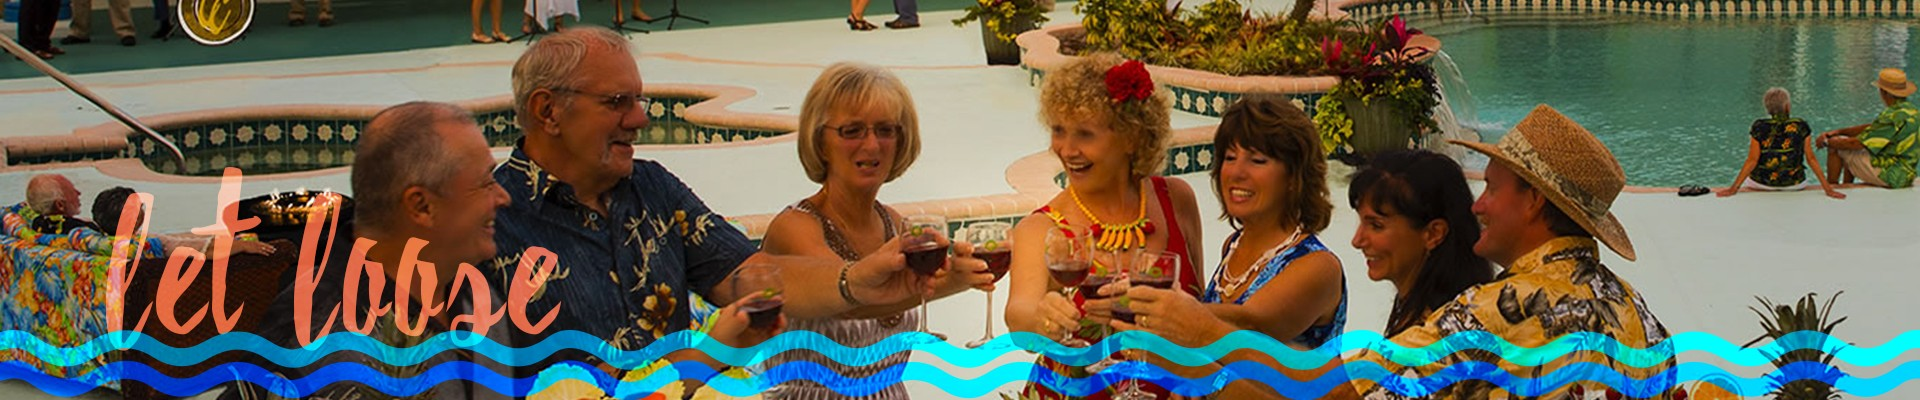 let loose - adults cheers and drinking at Cross Creek RV Resort